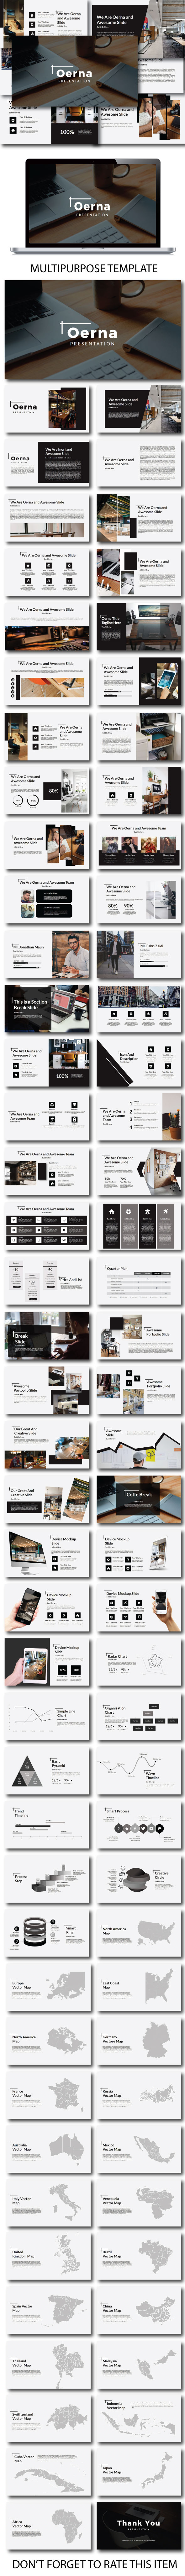 Oerna Multipurpose Google Slide Template - Google Slides Presentation Templates